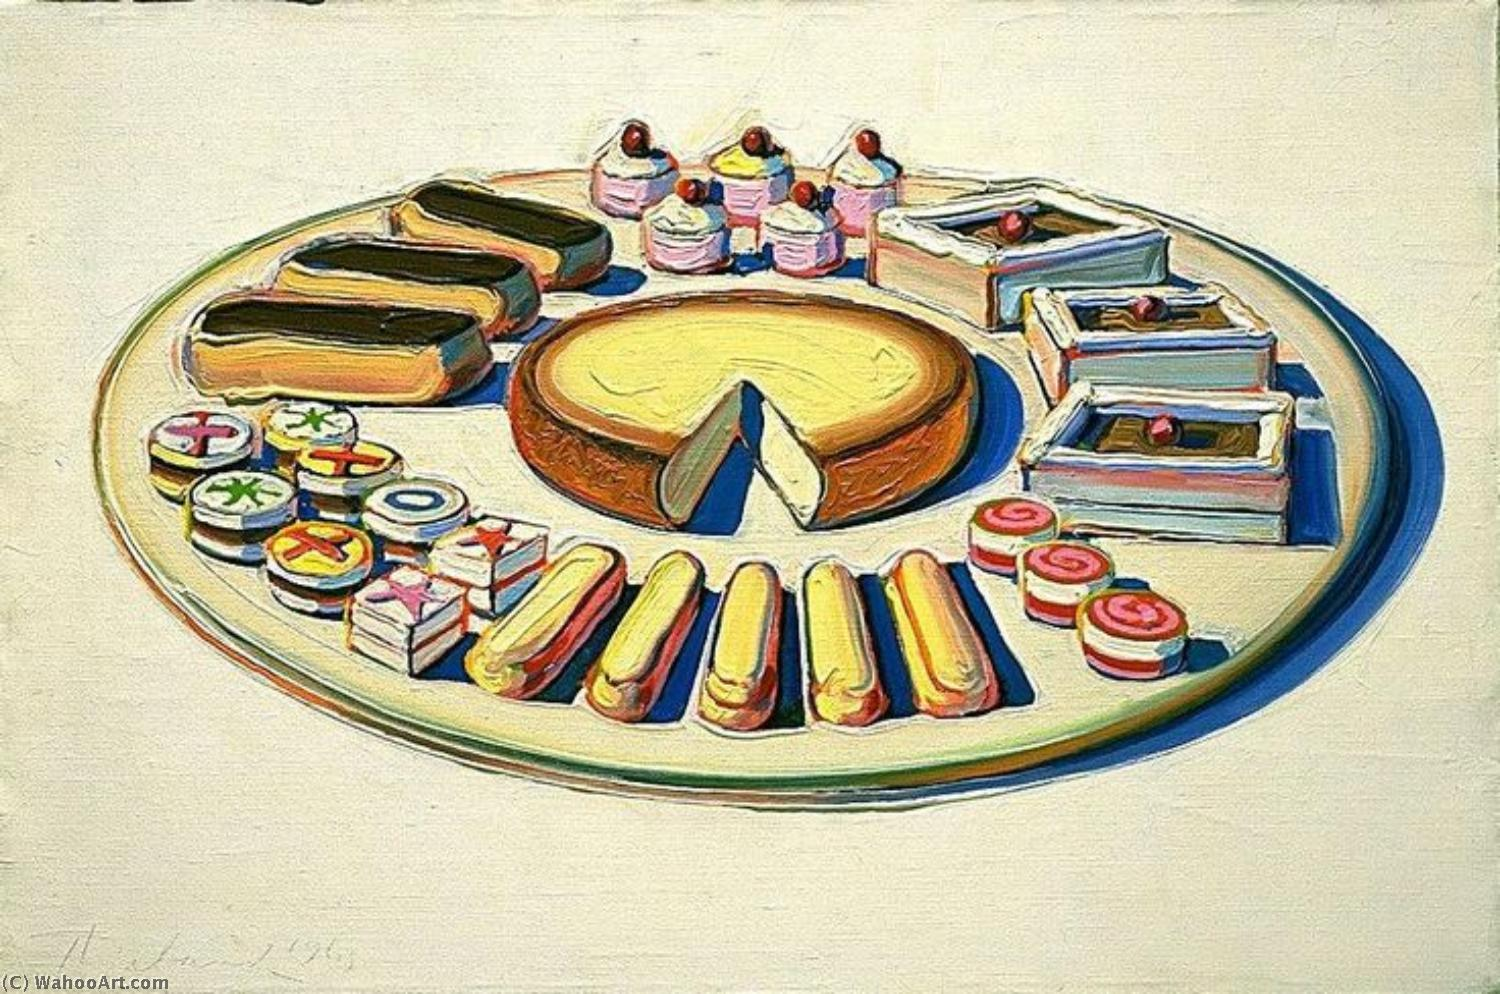 famous painting arte pop of Wayne Thiebaud